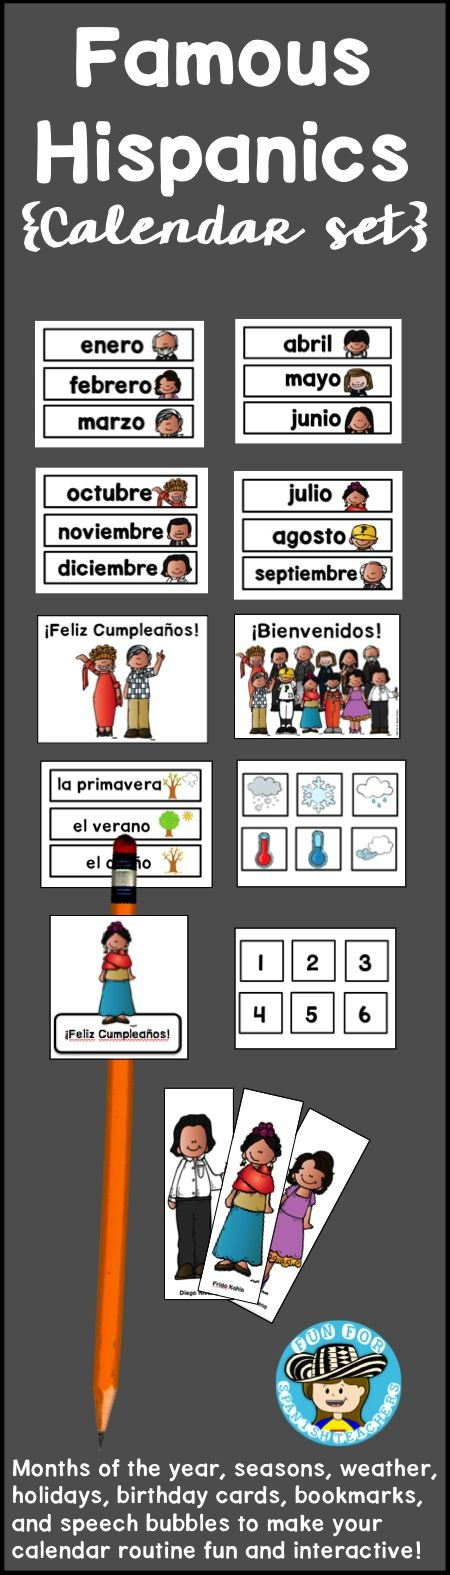 This calendar set has cards for months of the year, seasons, weather, some holidays, birthday cards, bookmarks, and speech bubbles to make your calendar routine fun and interactive.